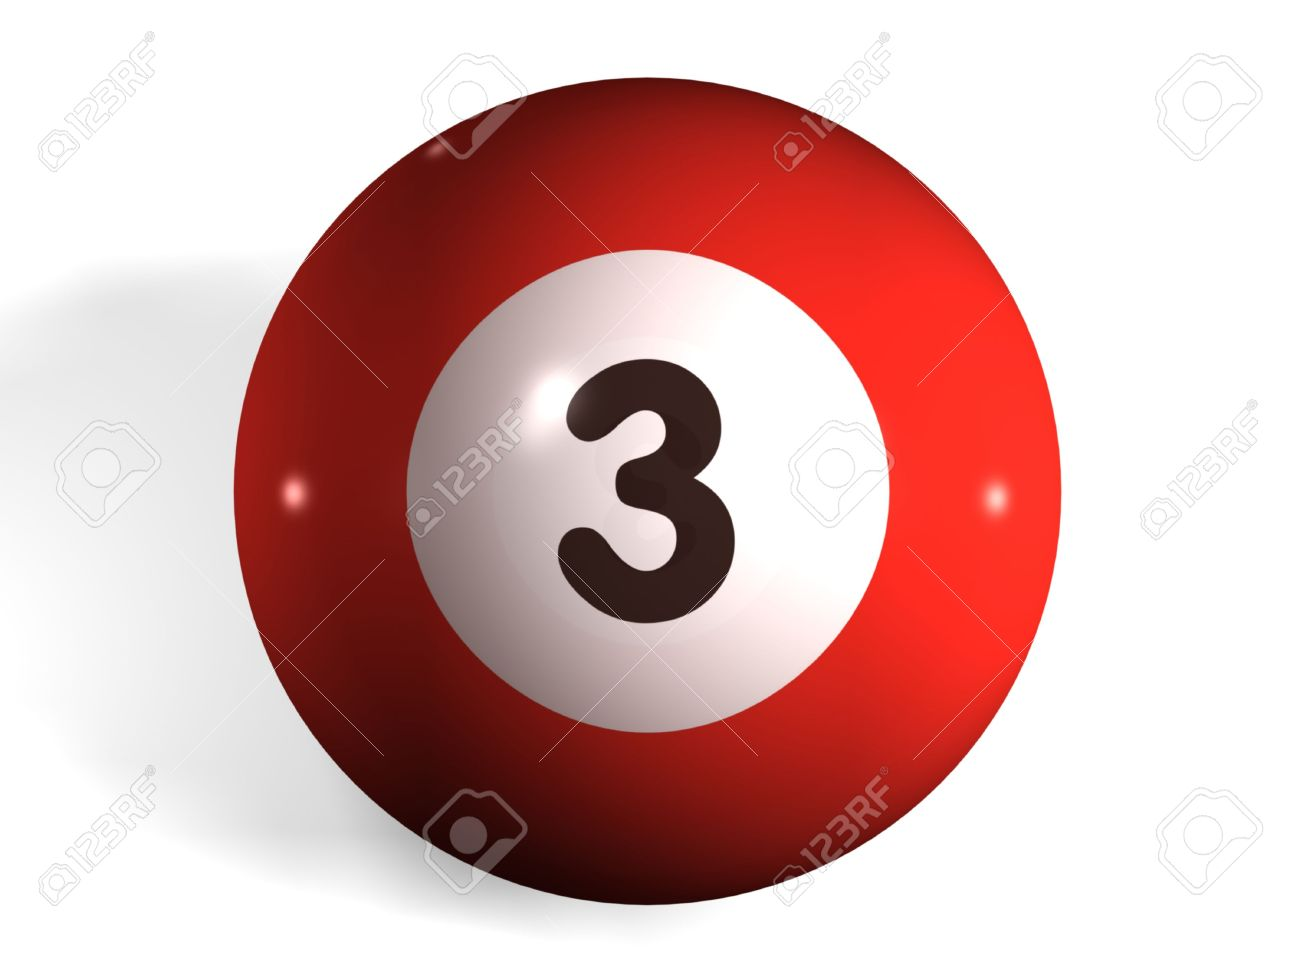 isolated 3d pool ball number 3 stock photo, picture and royalty